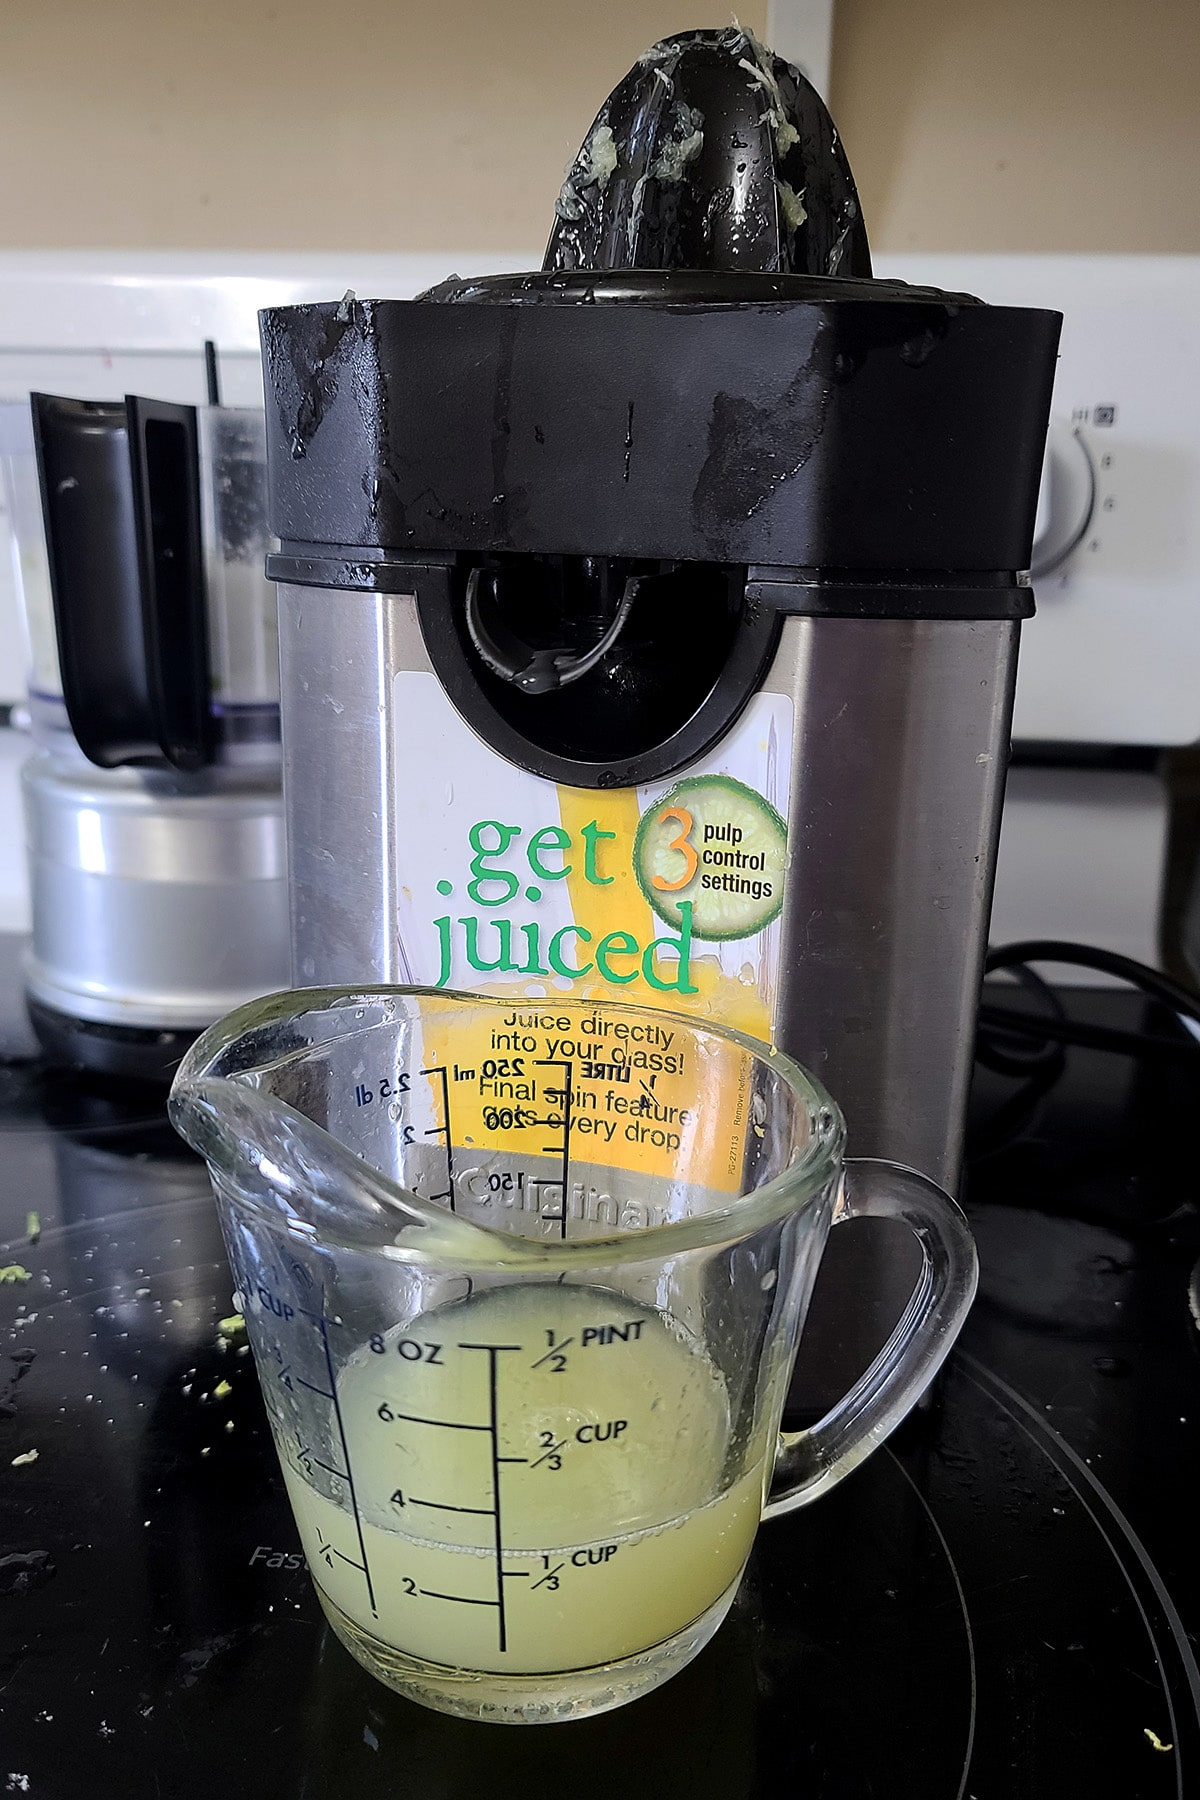 Lime juice pouring out of a juicer.